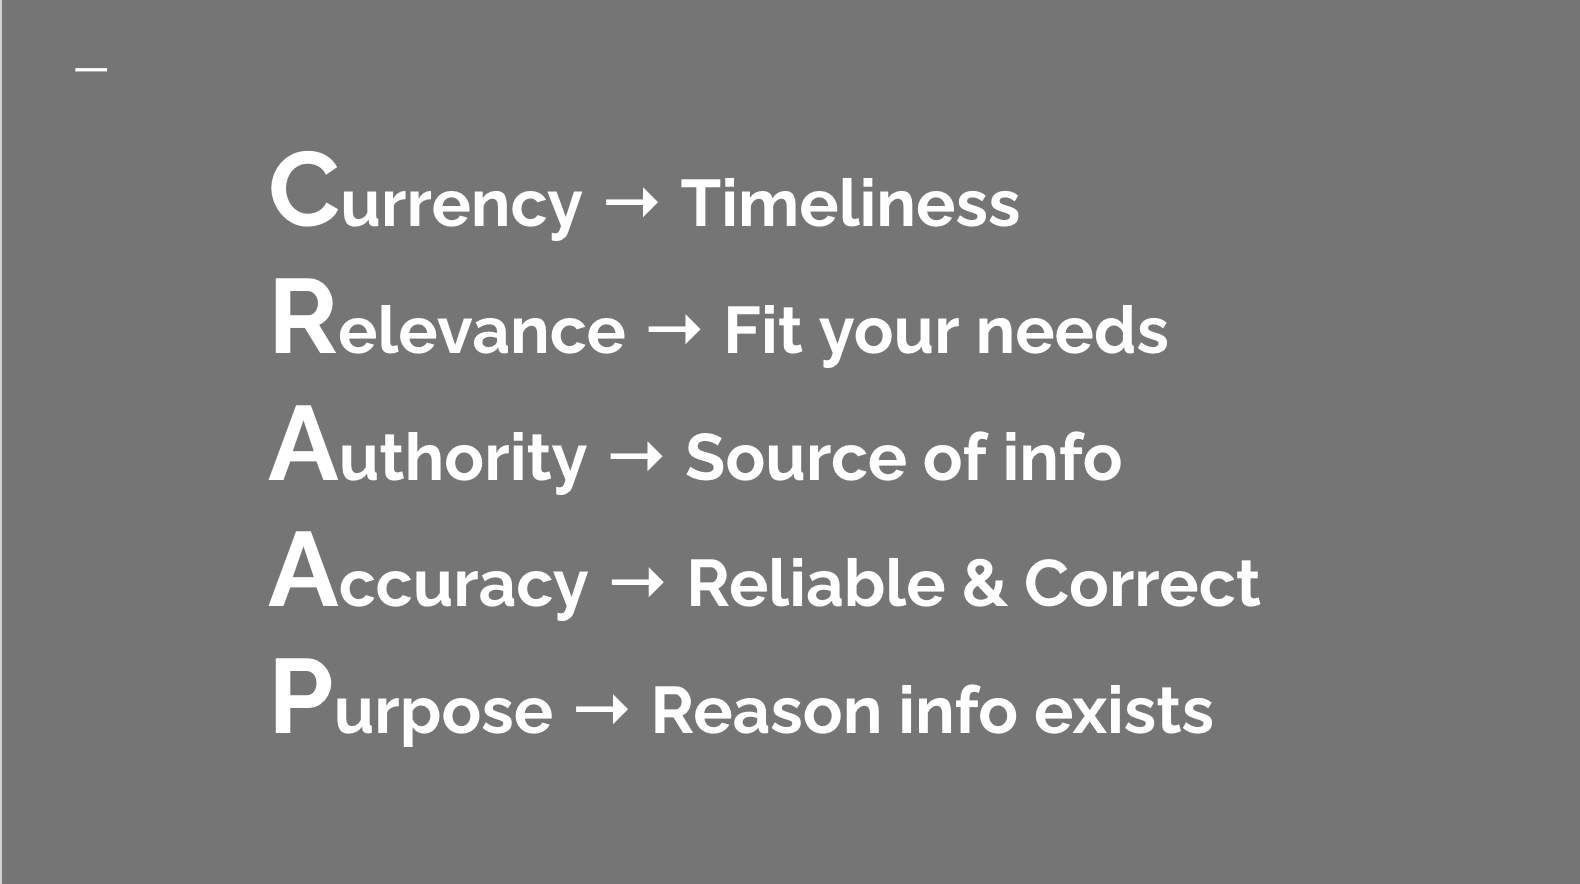 The image lists the 5 areas of the CRAAP Method: Currency or timeliness, Relevance or does it fit your needs?, Authority or Who wrote the information, Accuracy or is the information reliable and correct, and Purpose. or the reason the information exists.